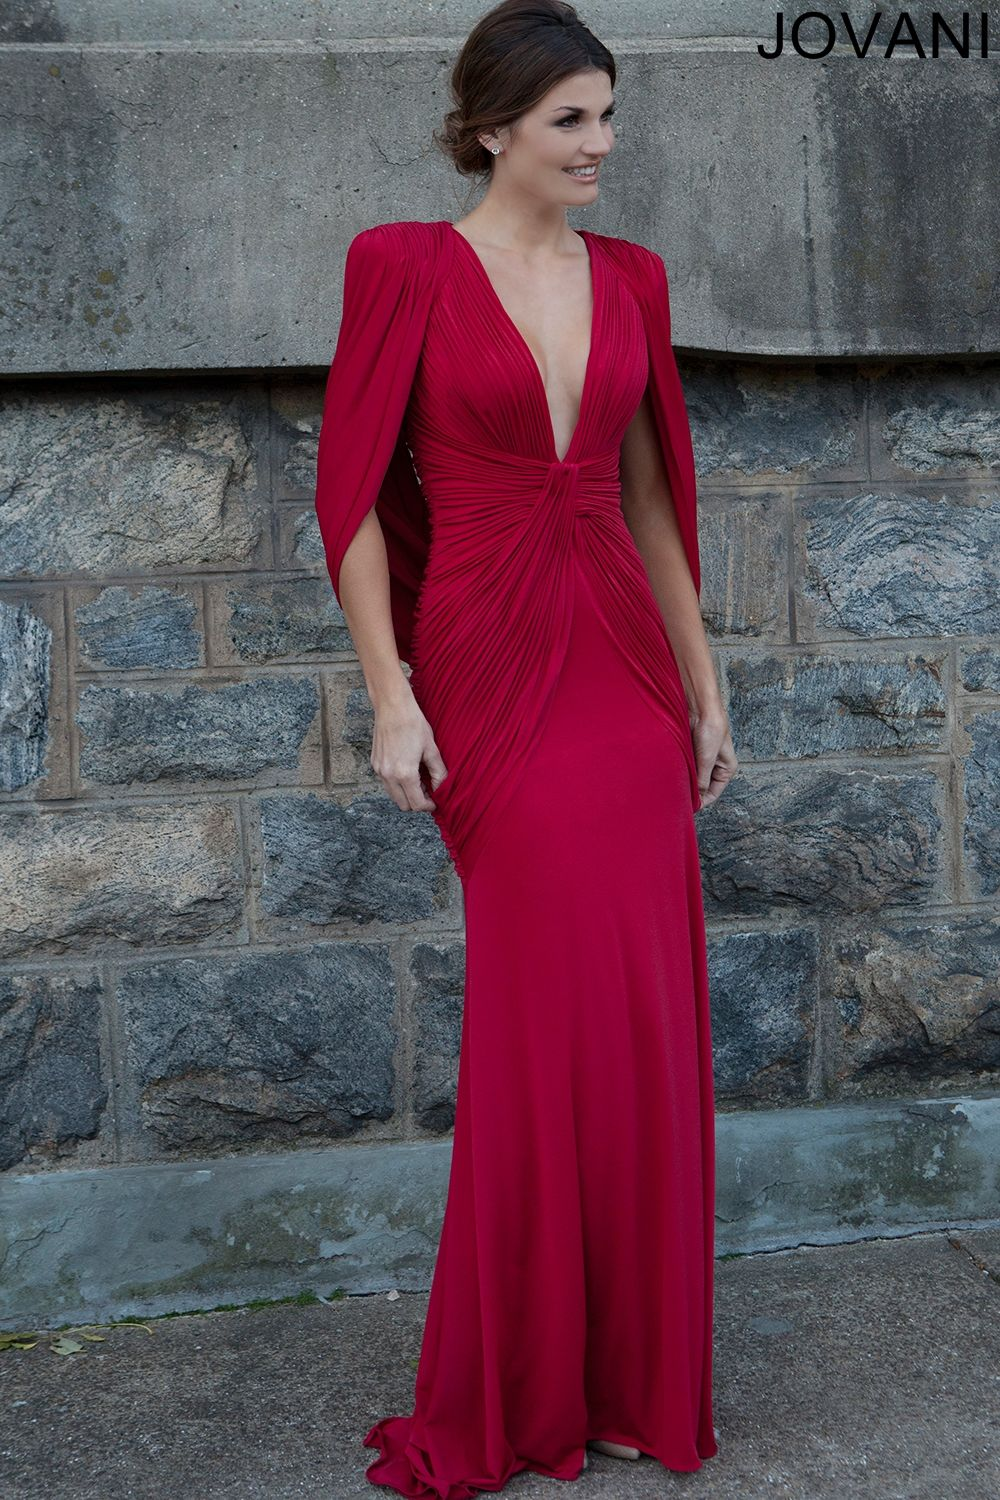 Long red dress for wedding  Plunging Neckline Red Dress   Evening Dresses  Wedding